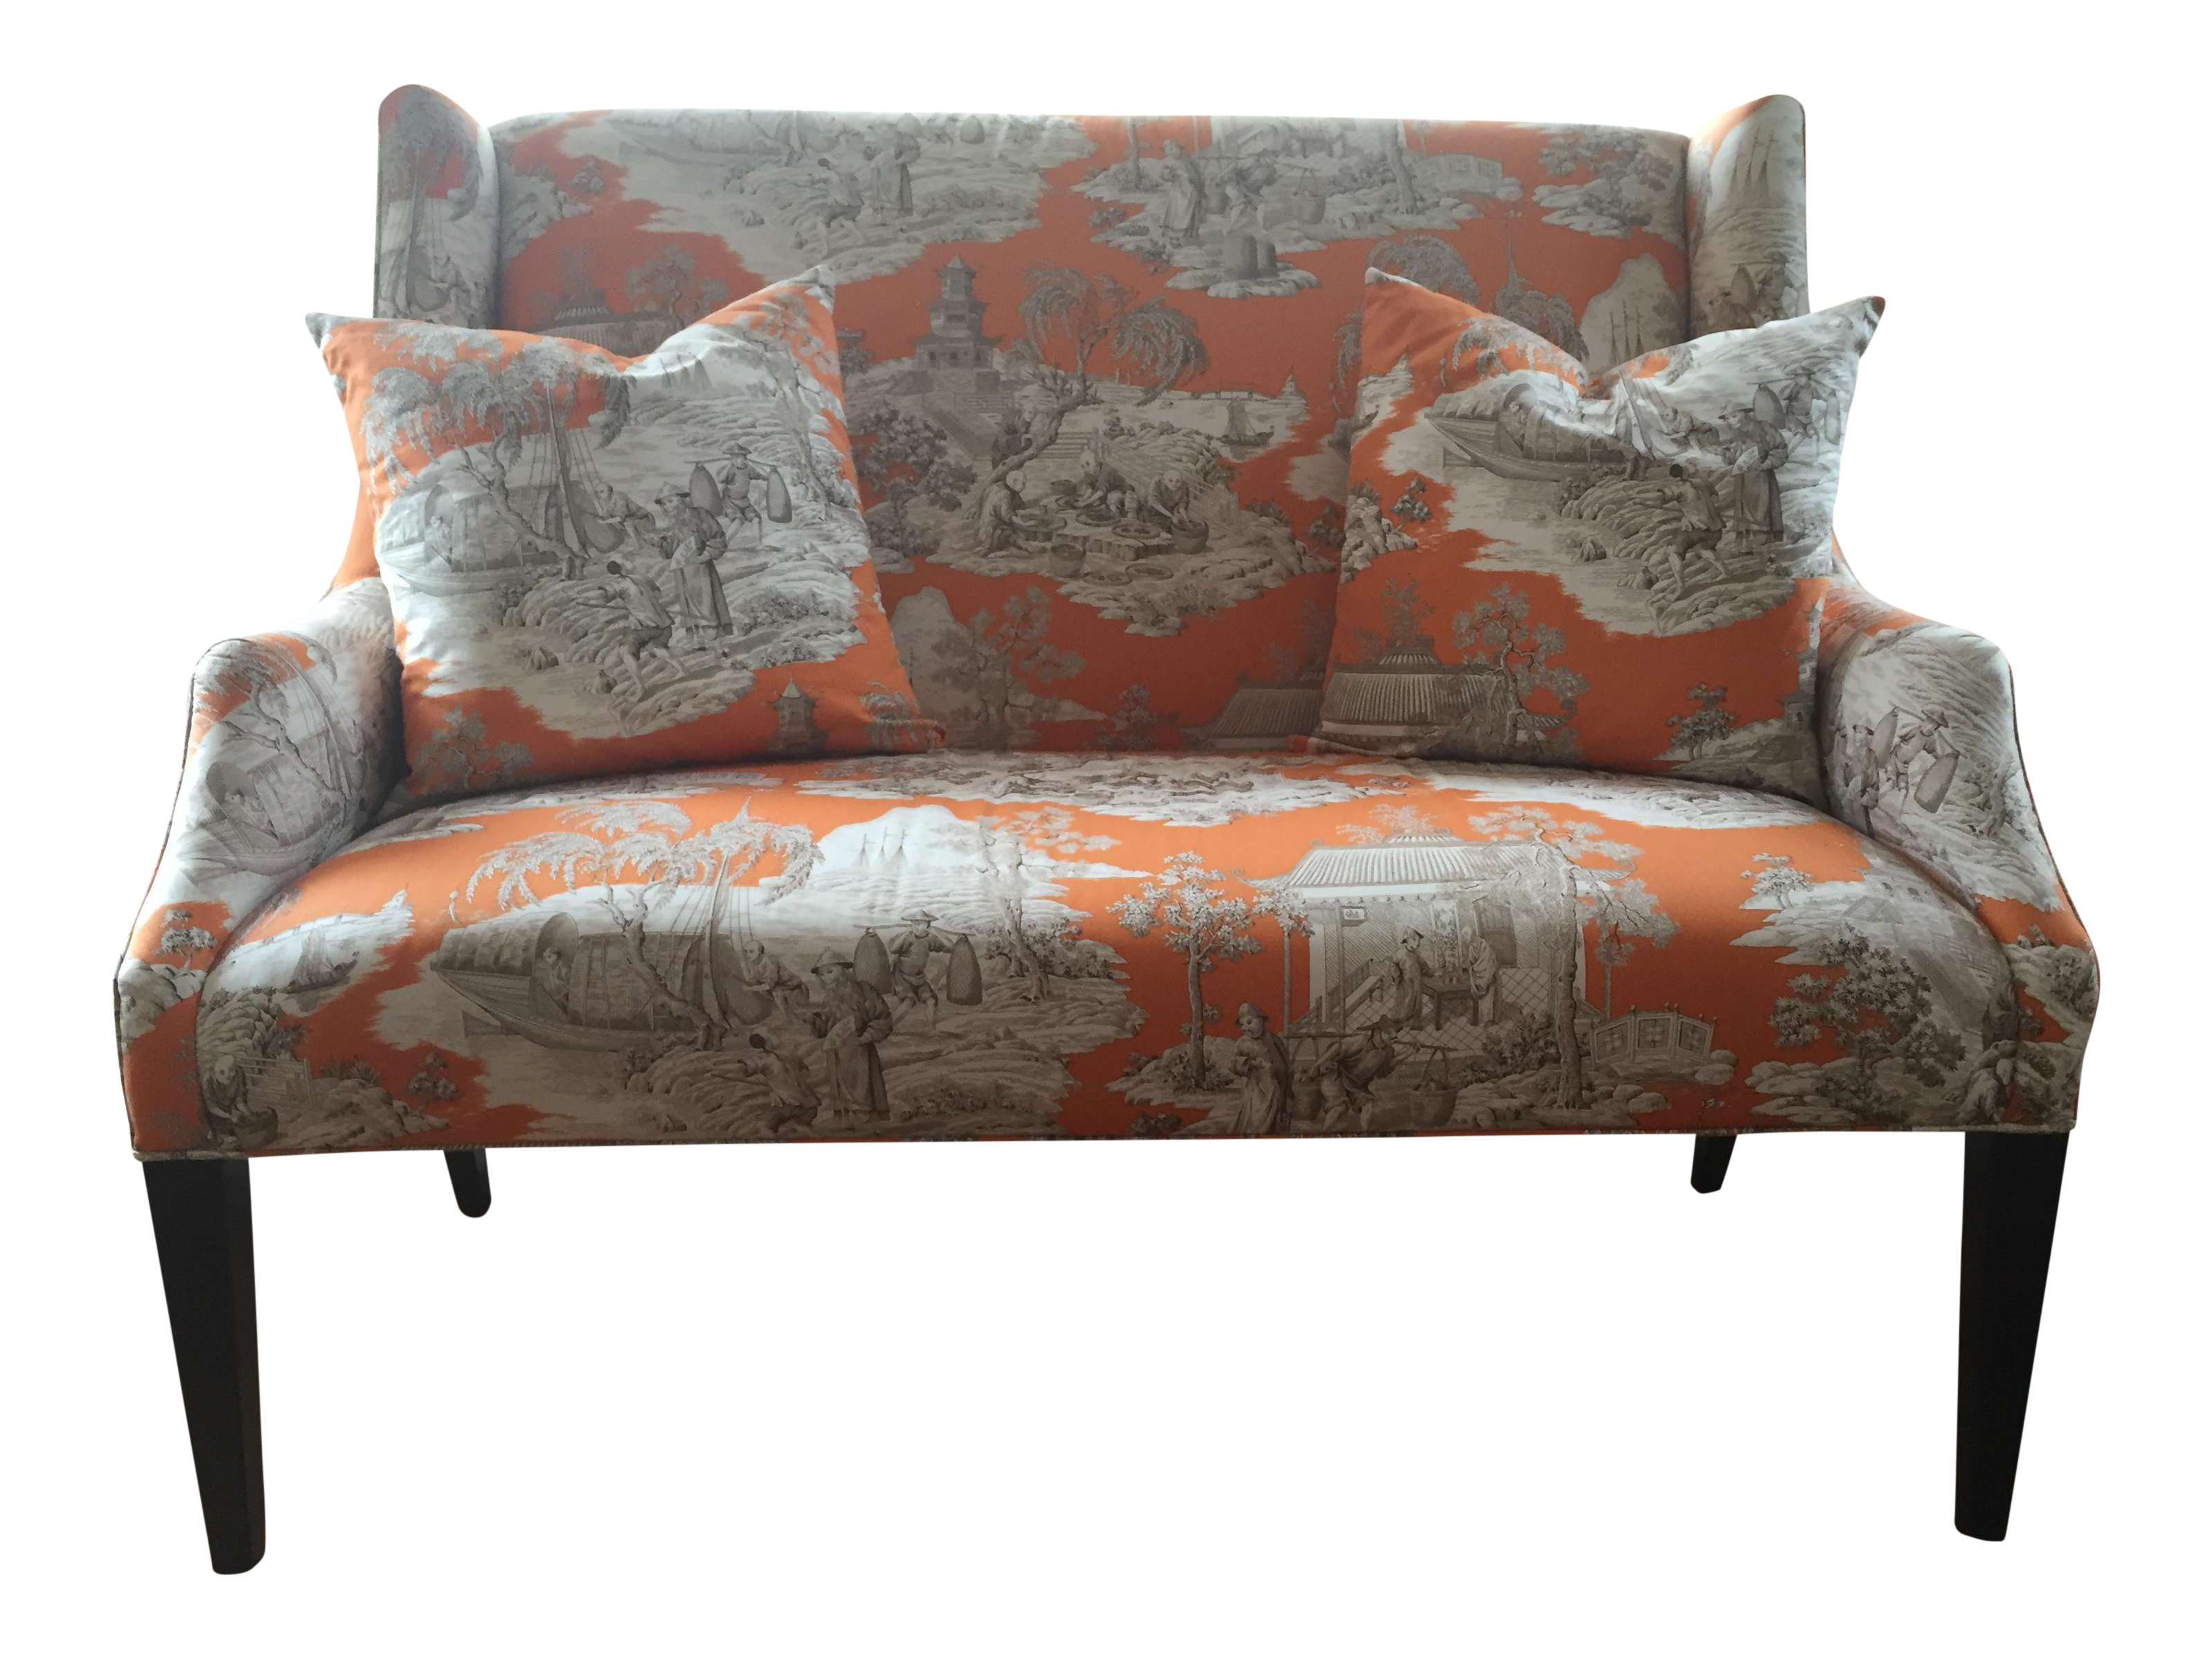 Toile Sofa French Provincial Style Tufted Sofa Newly